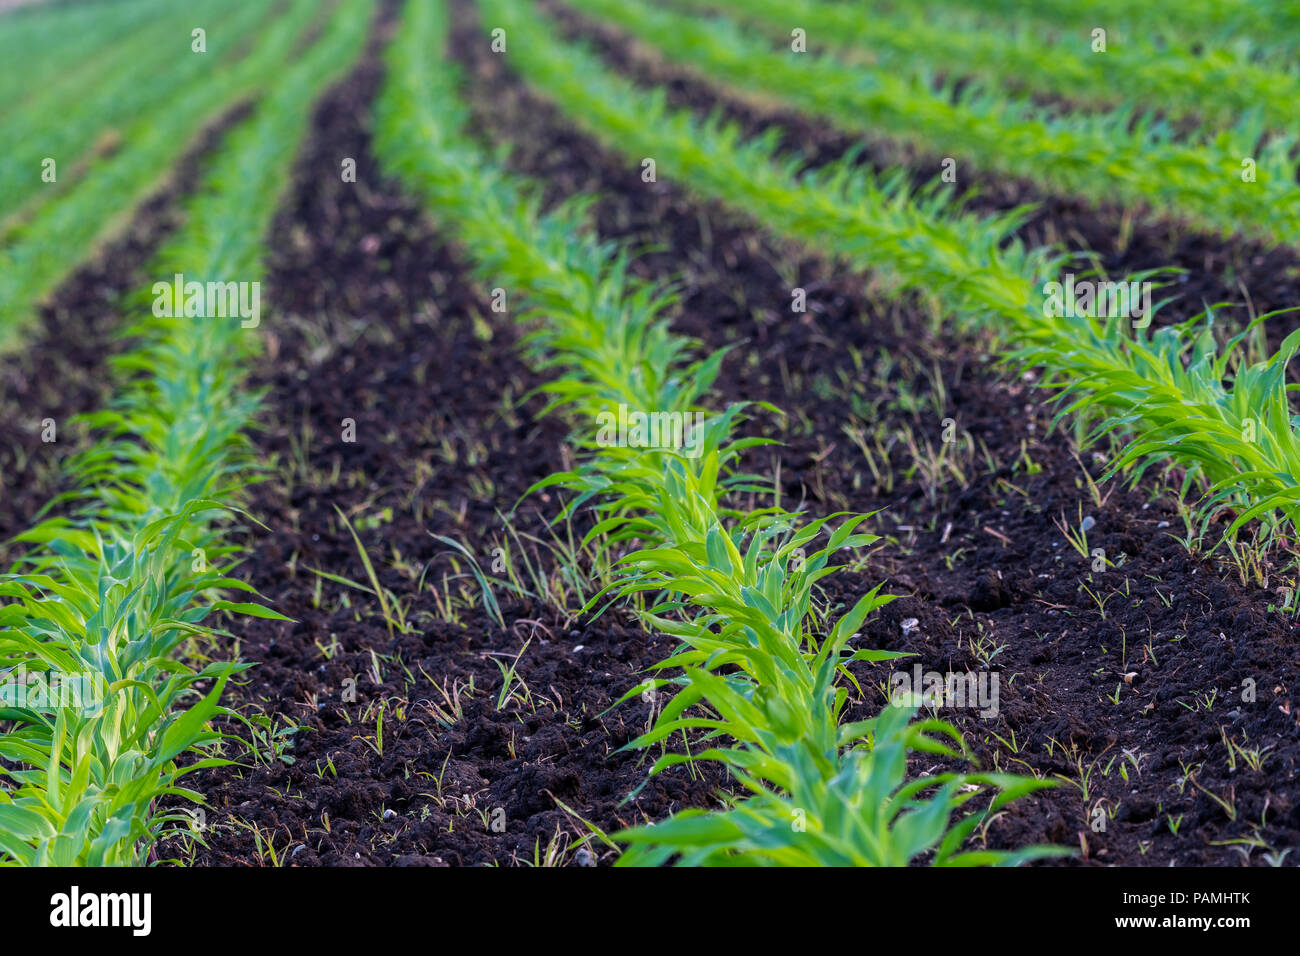 Summer landscape with a field of young corn with weeds, plant protection, herbicides usage, ecological farming, Slovenia Stock Photo